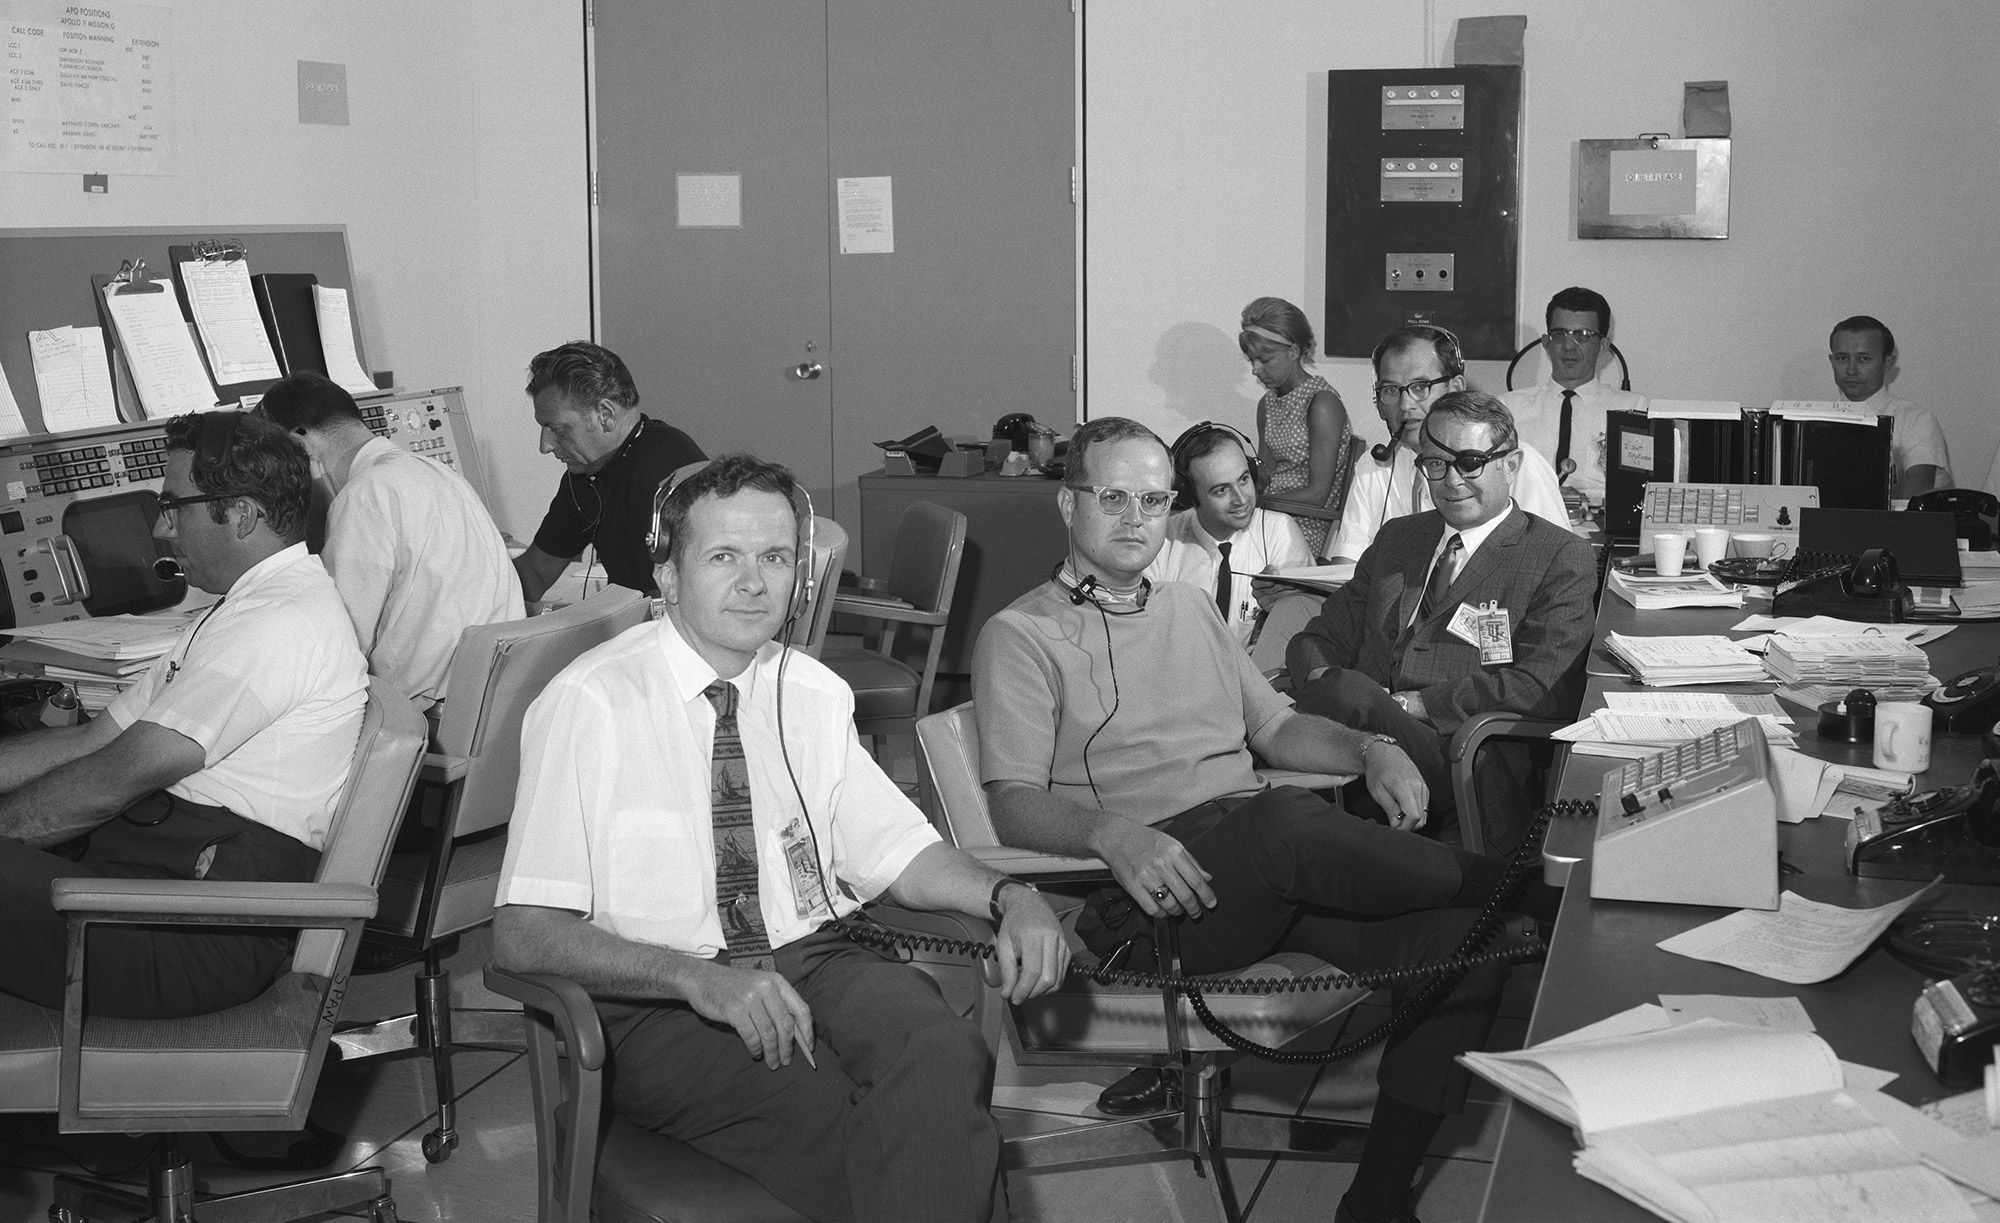 Tom Kelly (front) works in one of the 'back rooms' of Mission Control during the Apollo 11 mission. Credit: NASA via Retro Space Images